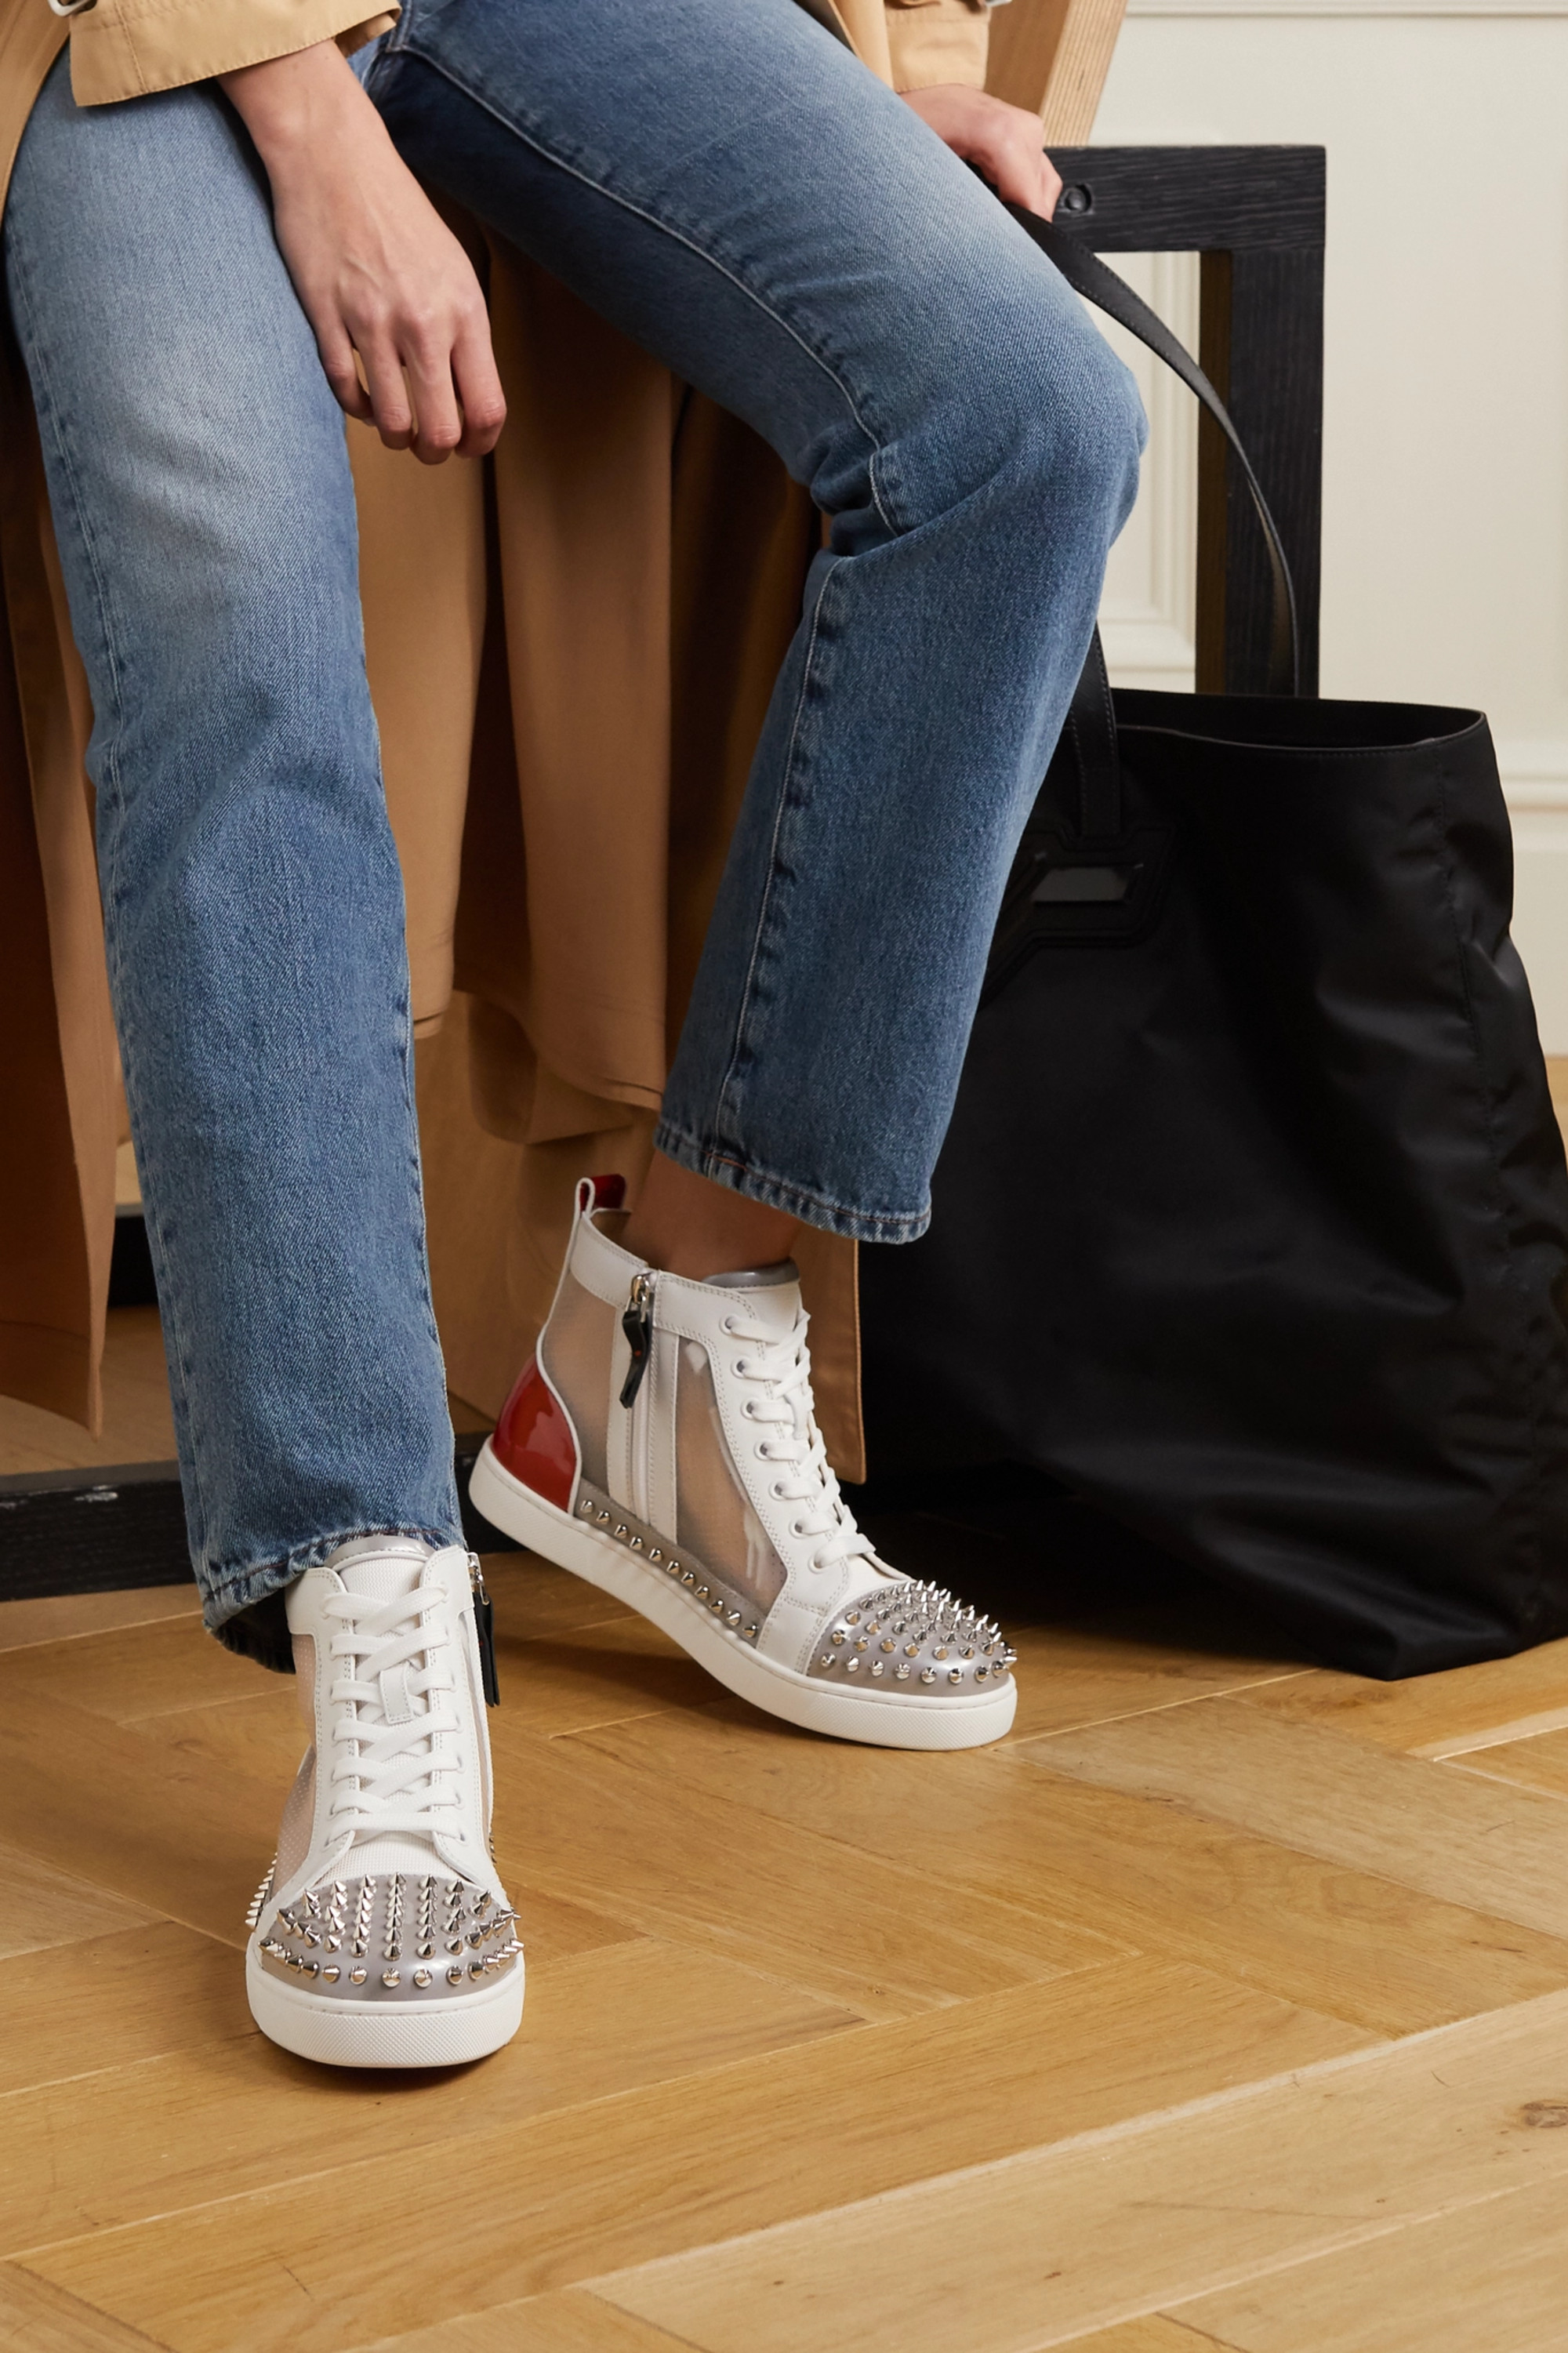 Christian Louboutin Sosoxy Spikes Donna mesh and leather high-top sneakers and cotton socks set